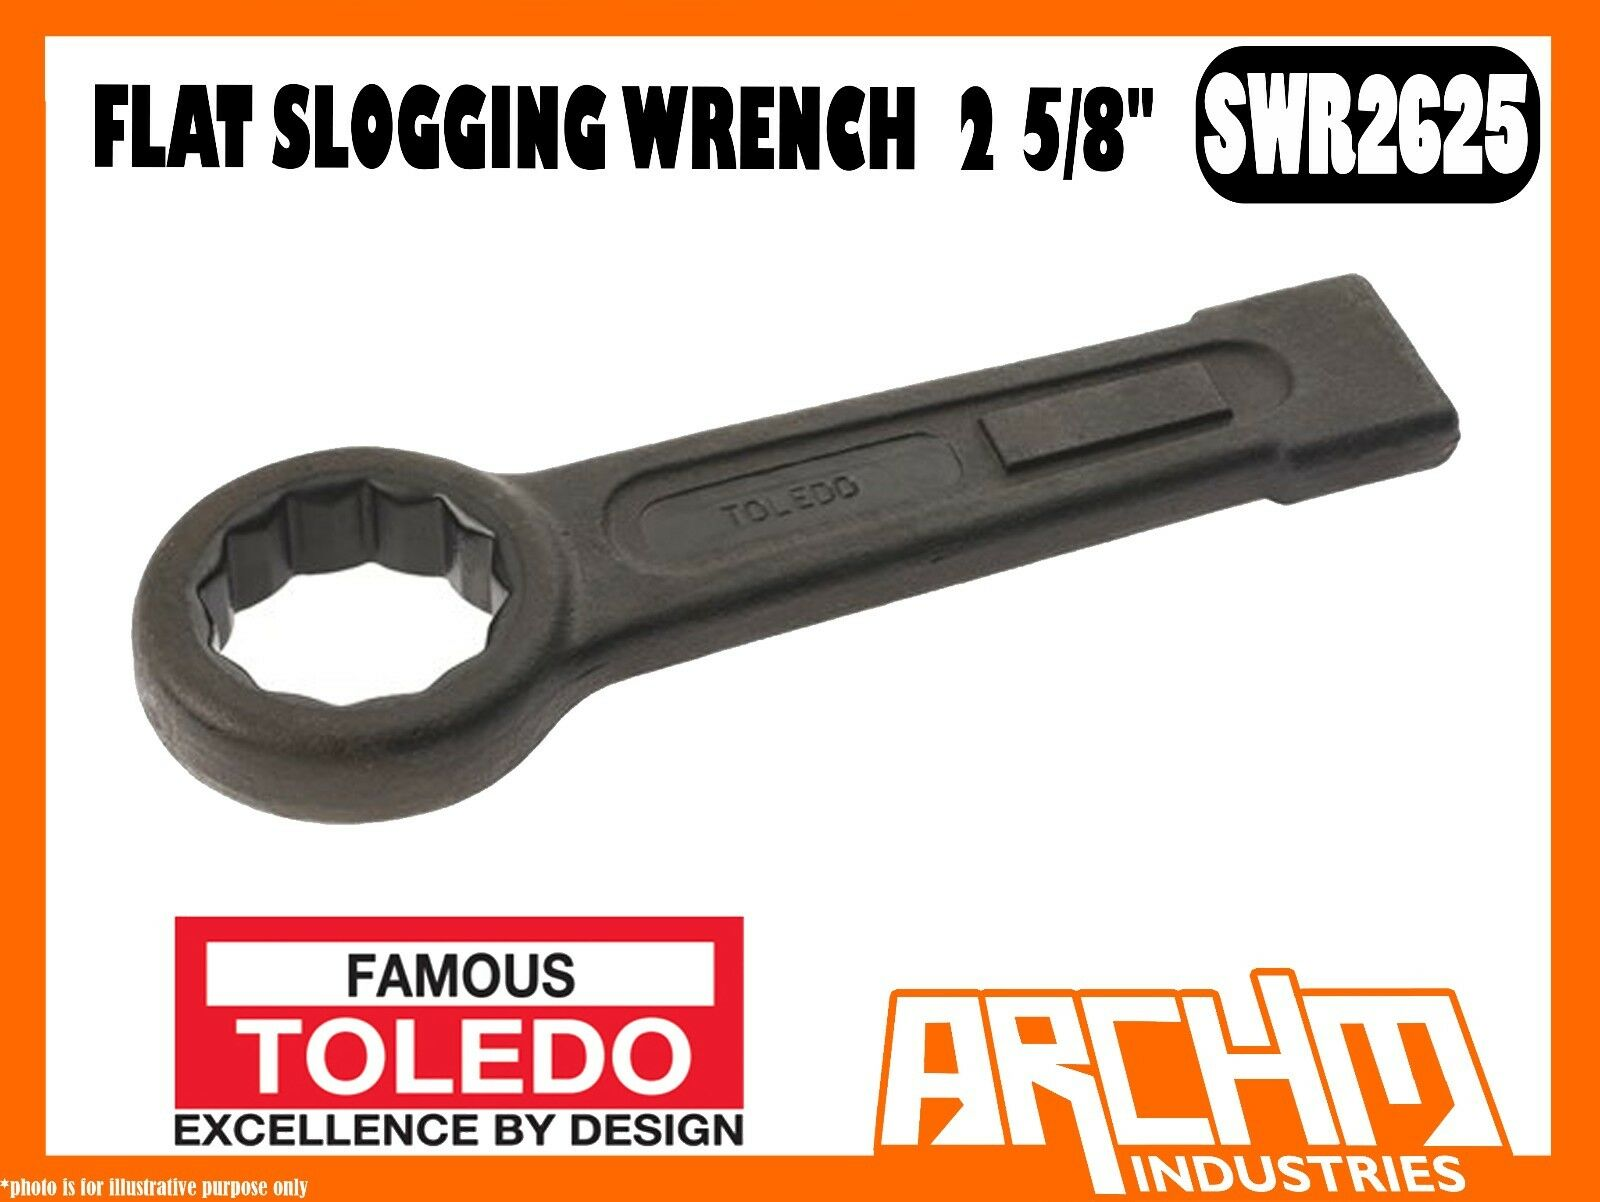 TOLEDO SWR2625 - FLAT SLOGGING WRENCH -  2 5 8  - IMPERIAL